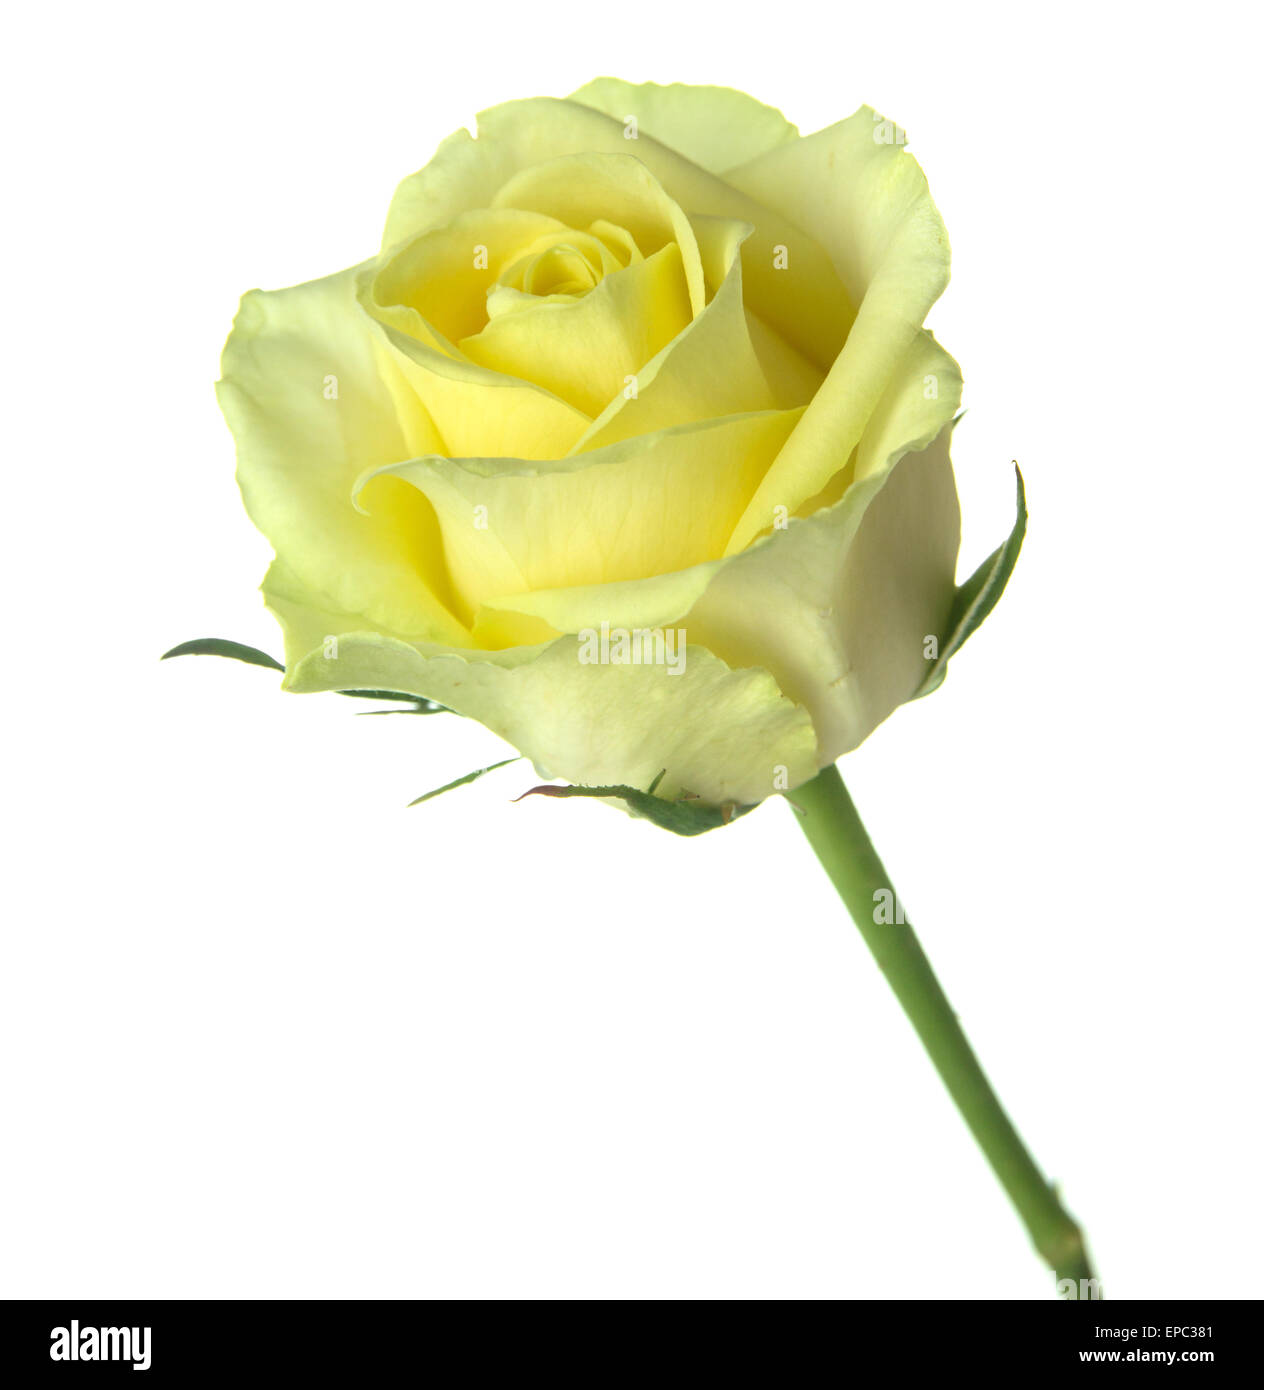 half opened yellow-green rose isolated on white background Stock Photo